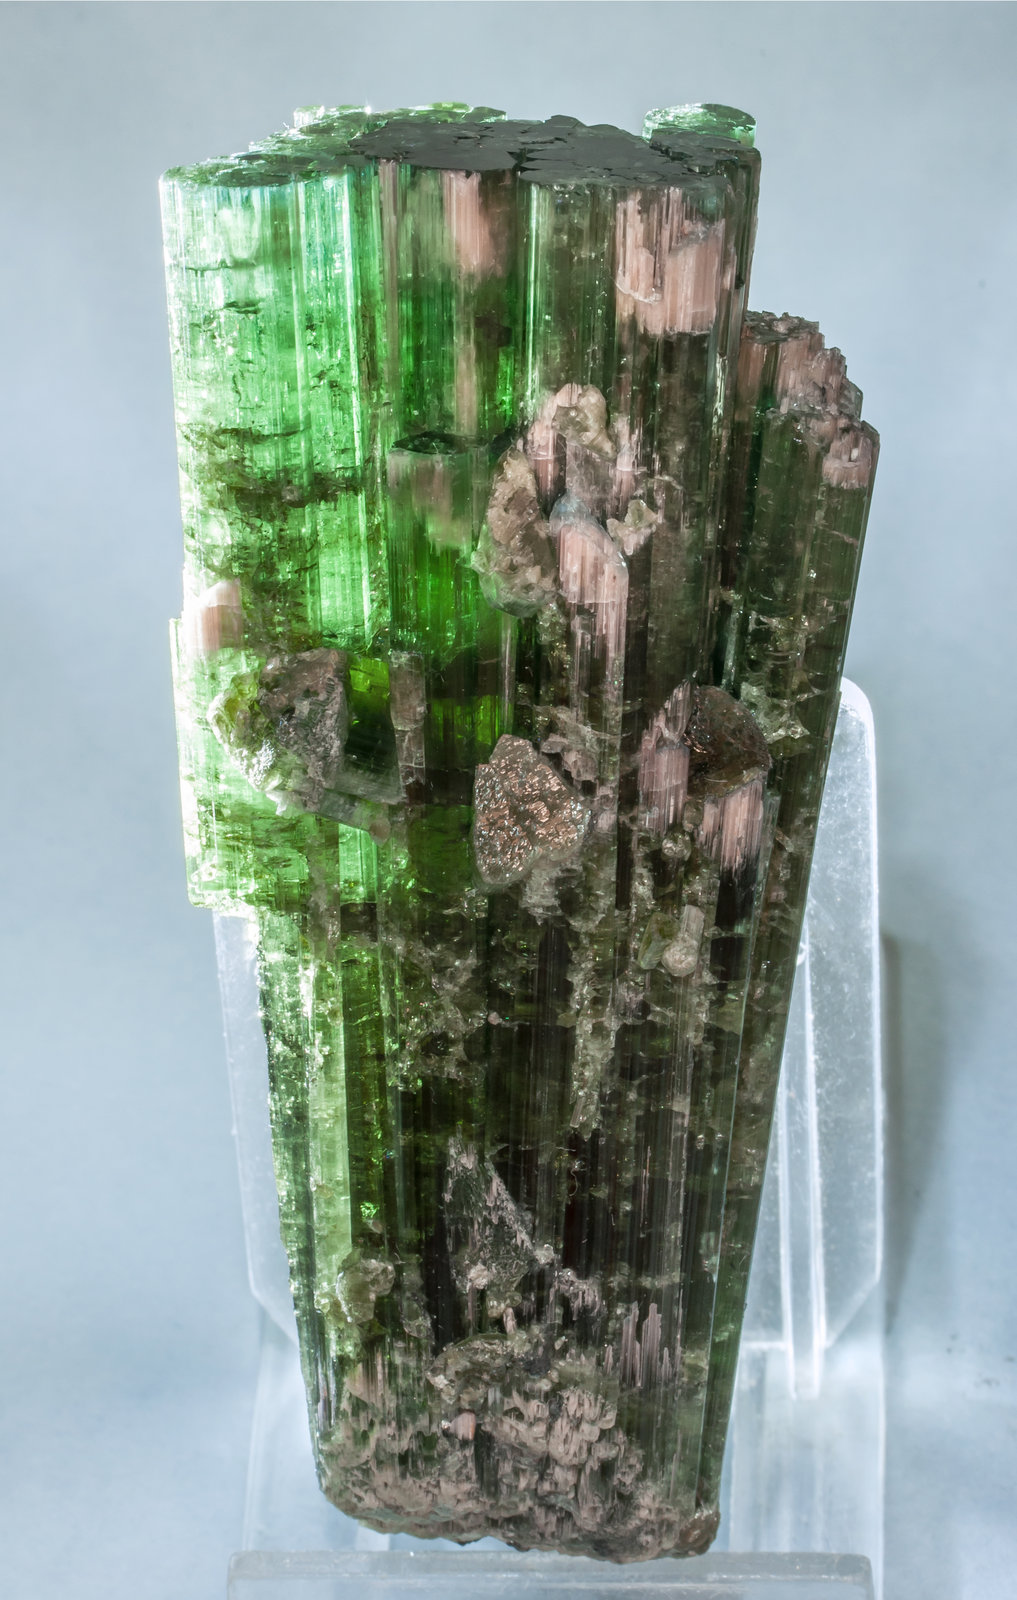 specimens/s_imagesAF5/Elbaite-TV37AF5f2.jpg